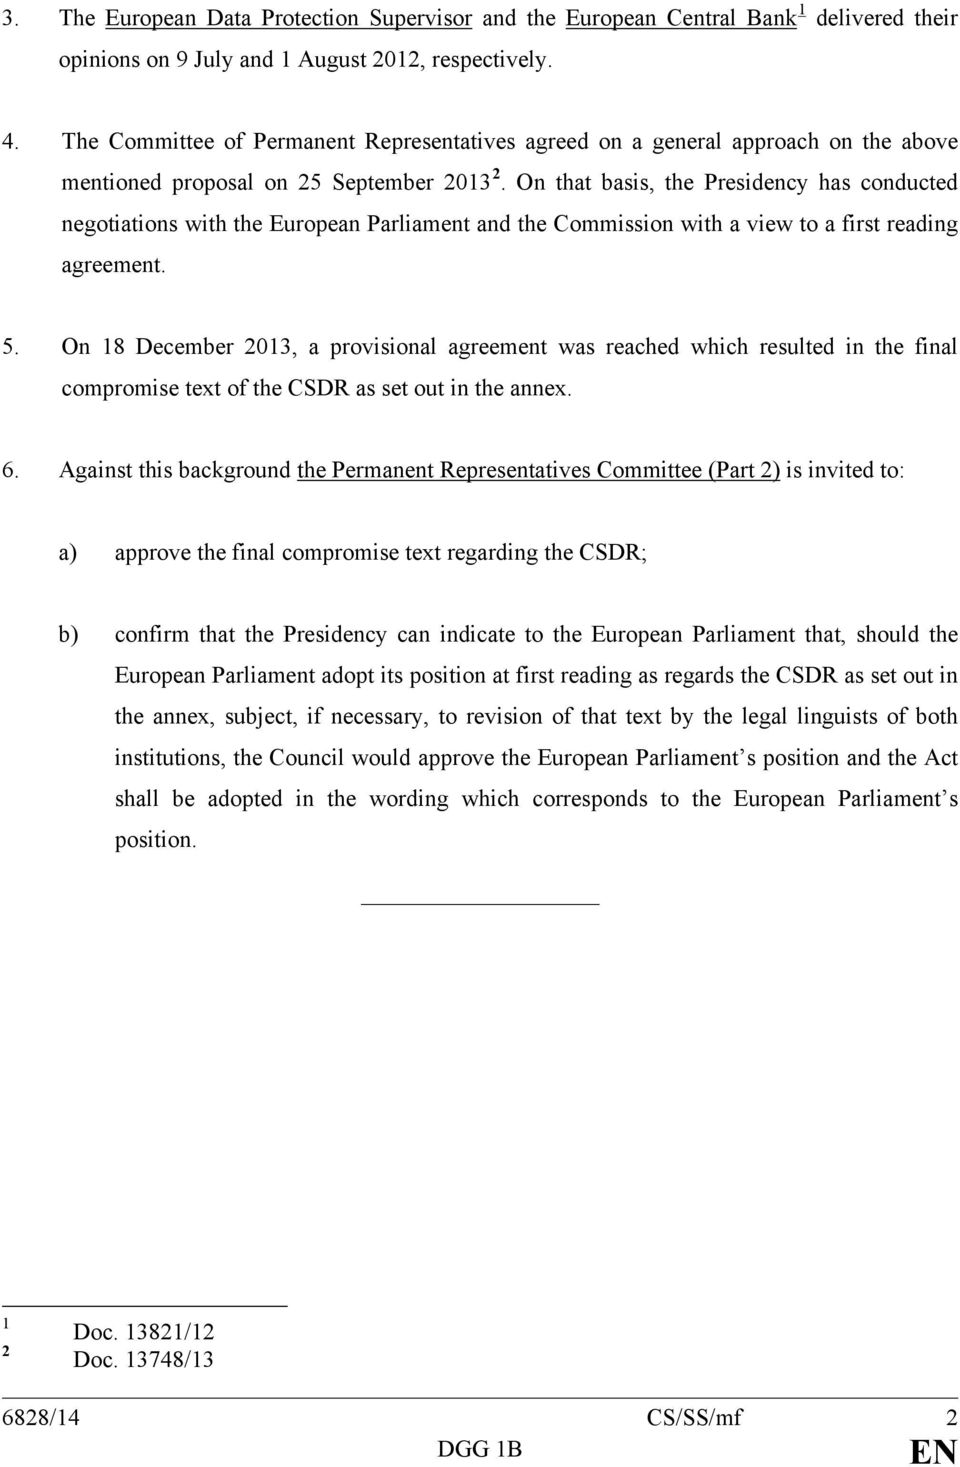 On that basis, the Presidency has conducted negotiations with the European Parliament and the Commission with a view to a first reading agreement. 5.